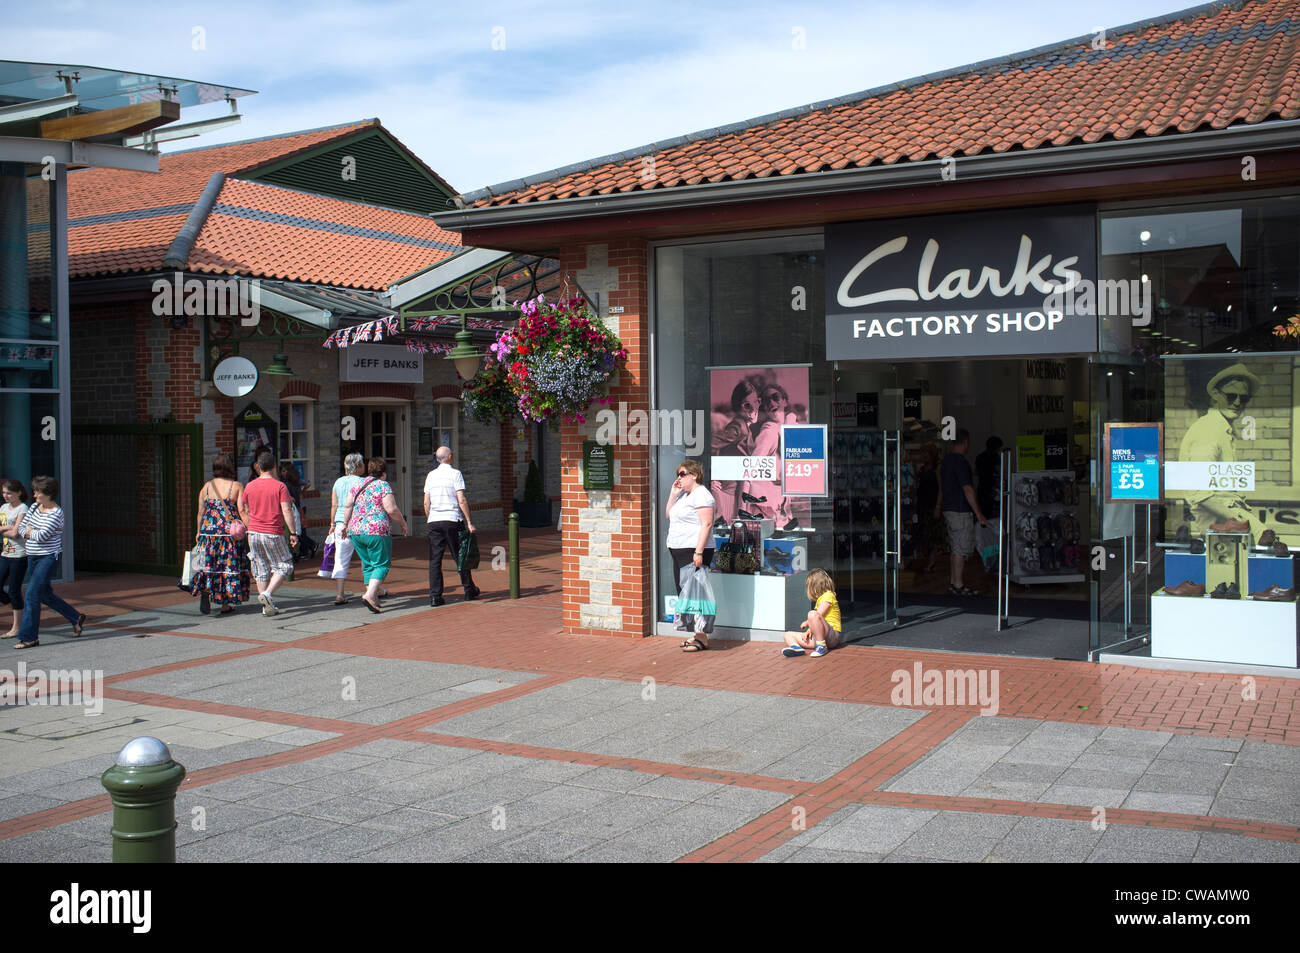 1c7a6fae4cc Clarks Village Shopping Outlet at Street Stock Photo: 50023036 - Alamy